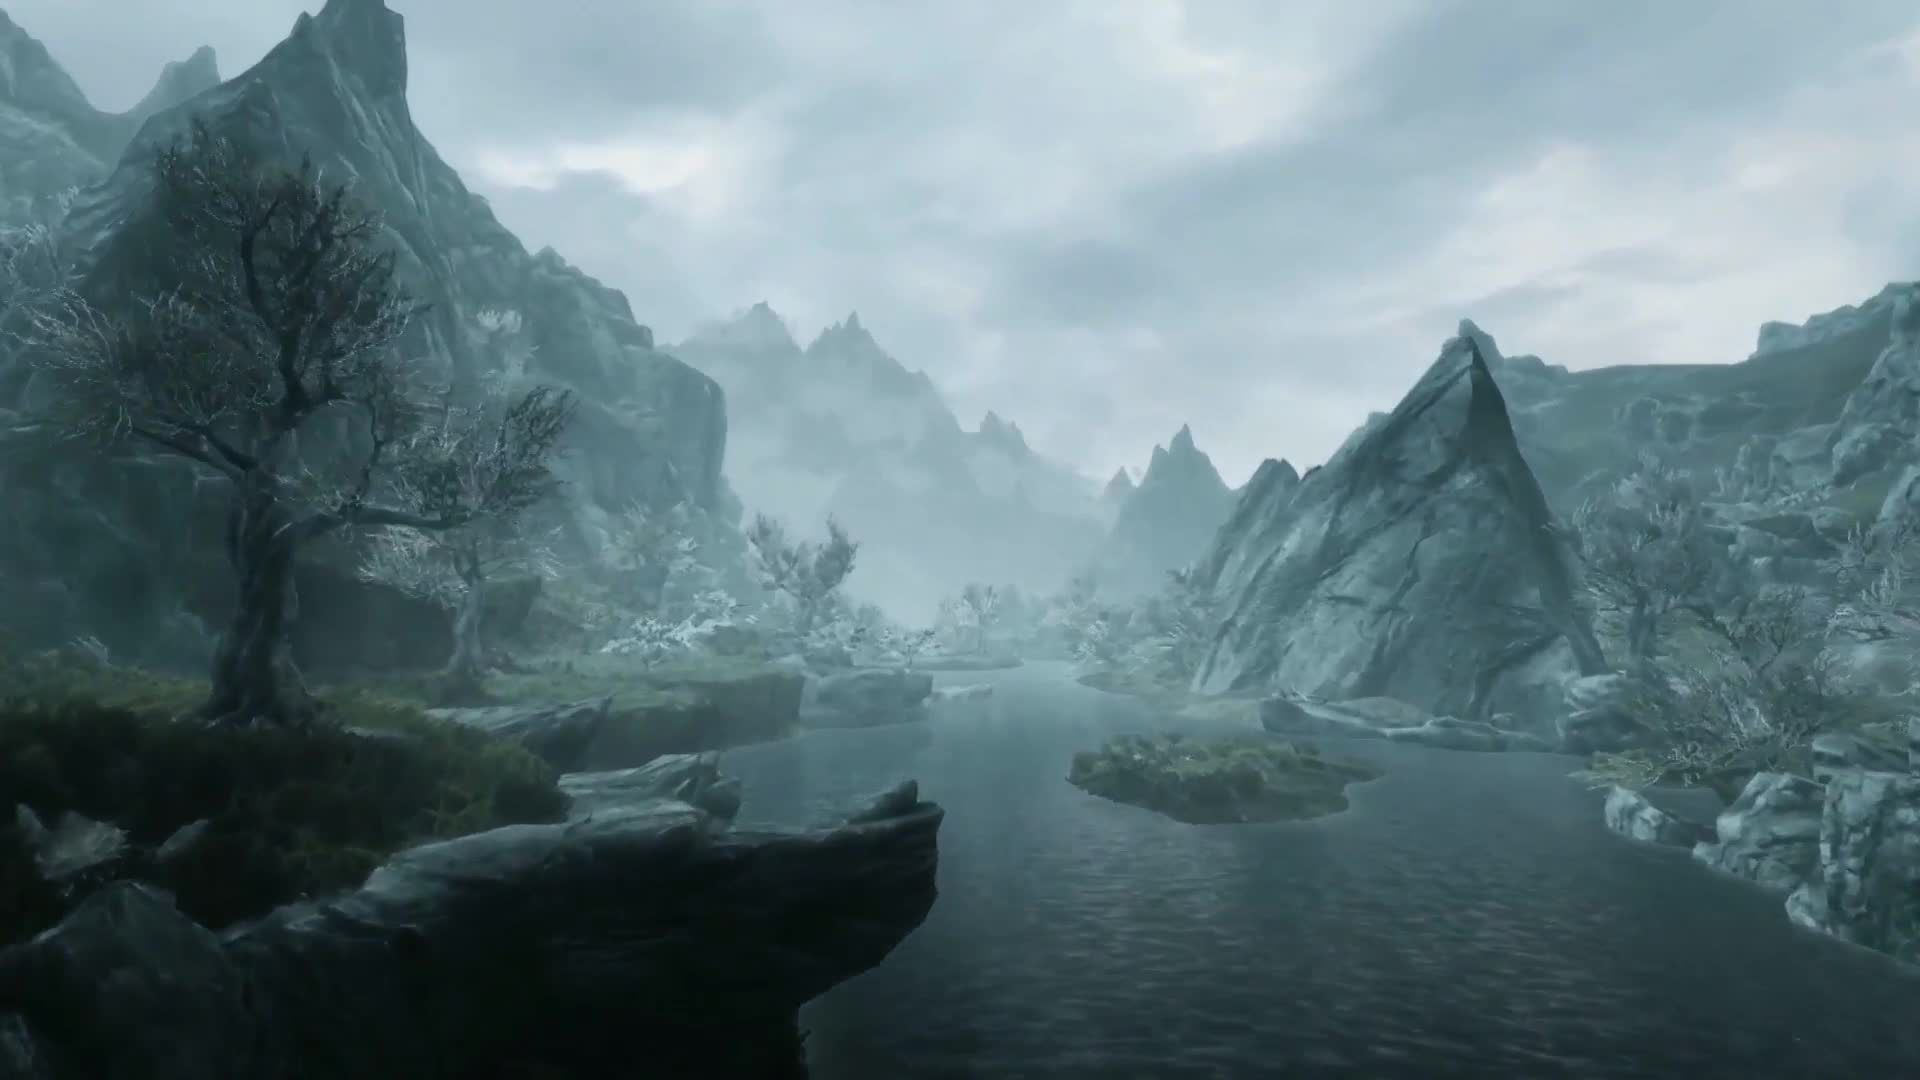 Elder Scrolls 5: Skyrim is officially coming to the Nintendo Switch